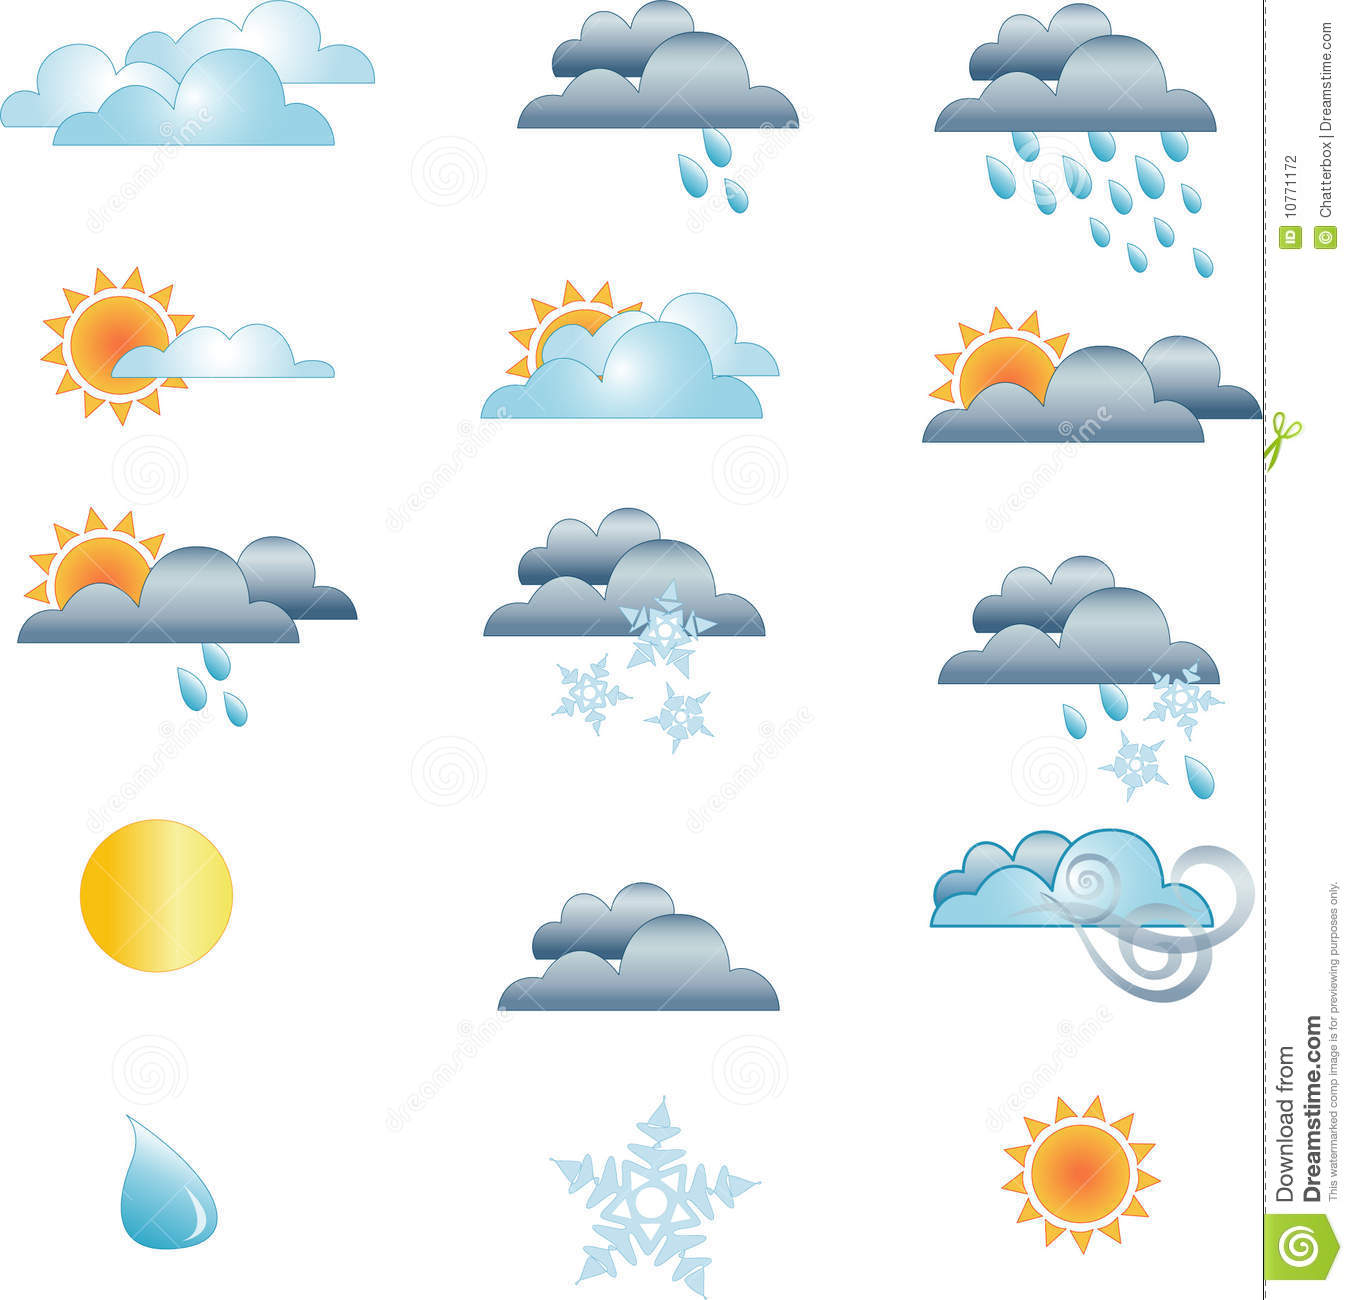 Weather forecast icons stock vector. Illustration of rain ...  Weather forecas...